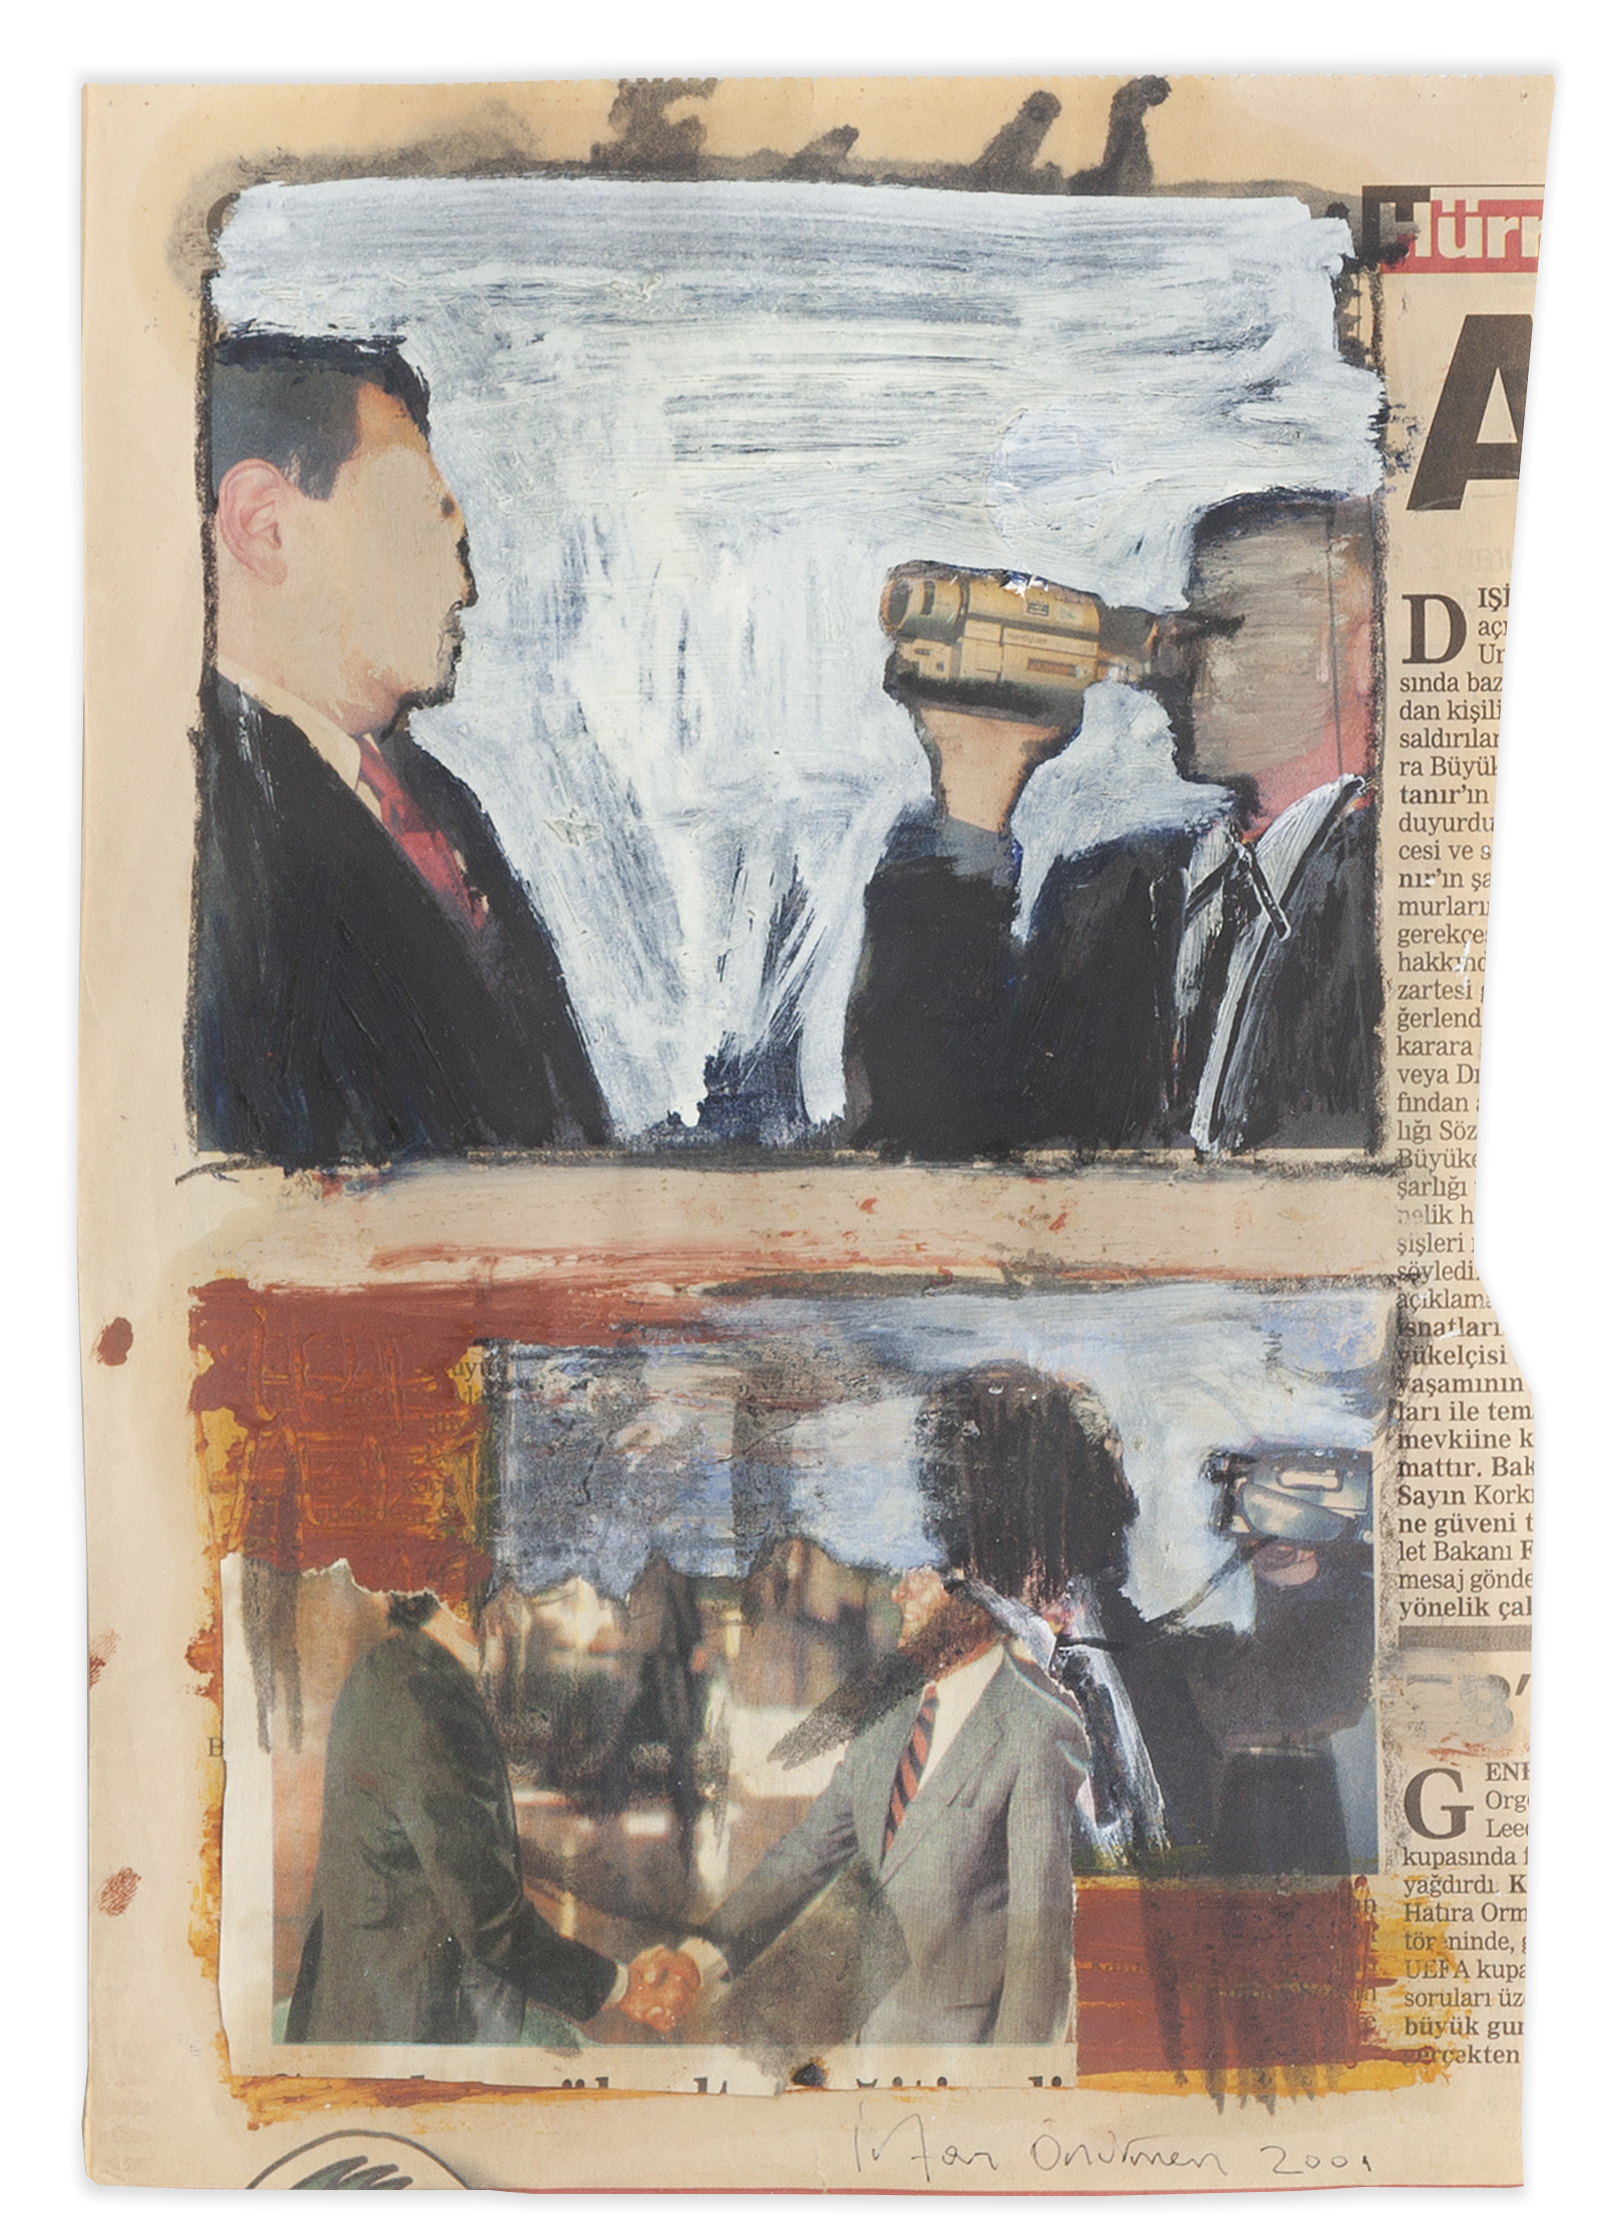 Newspaper-Series 3- 2000-2---Mixed media on newspaper 27x18 cm.jpg